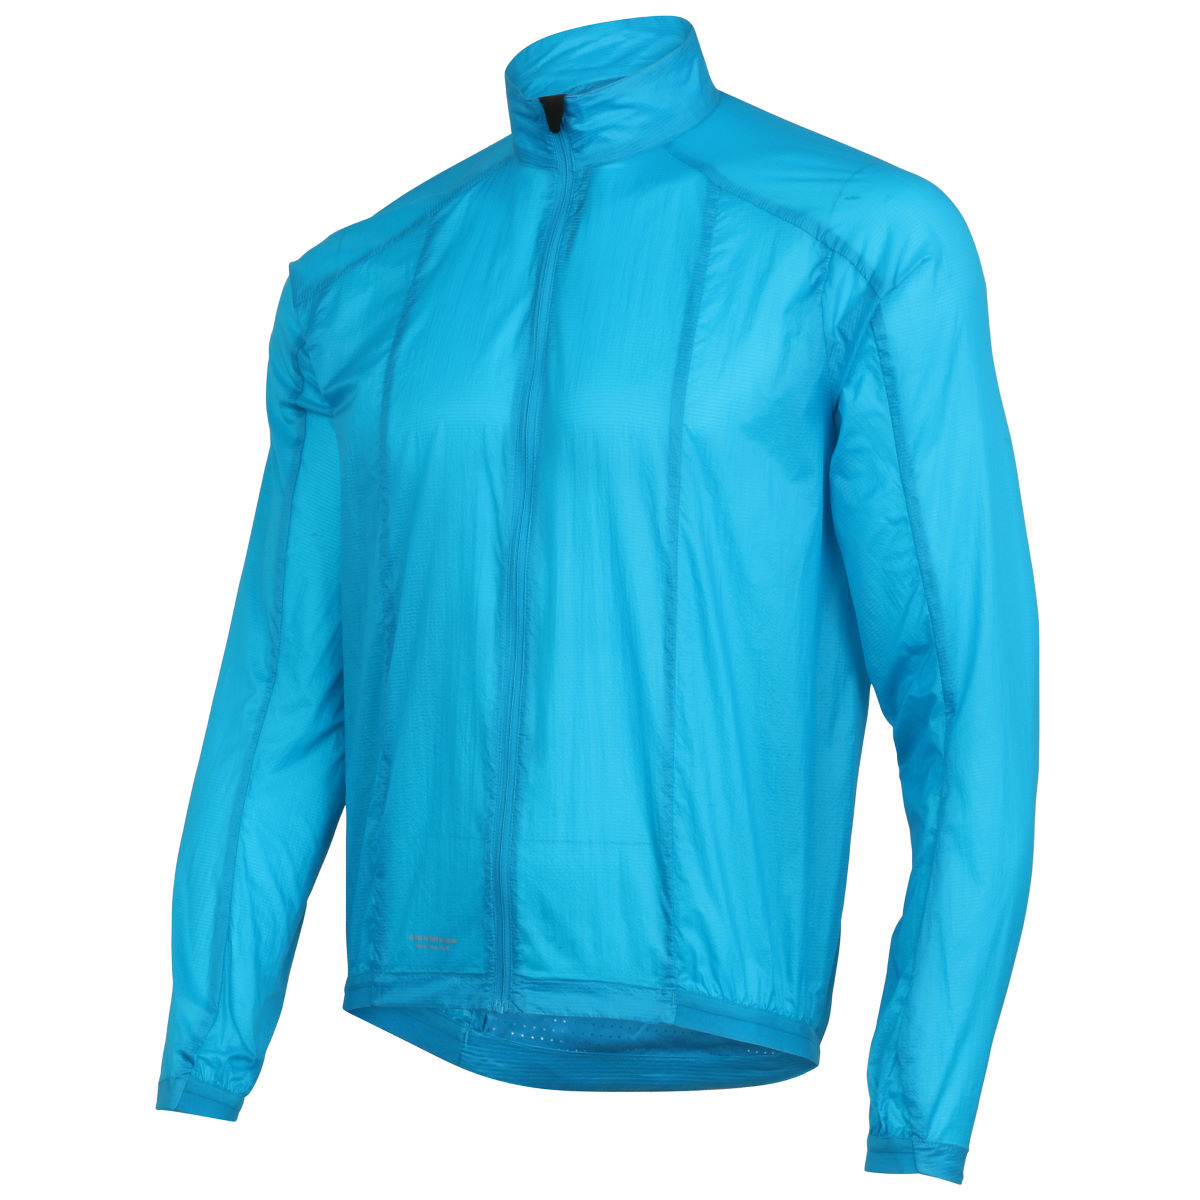 Veste Giro Wind - Large Bleu Coupe-vents vélo